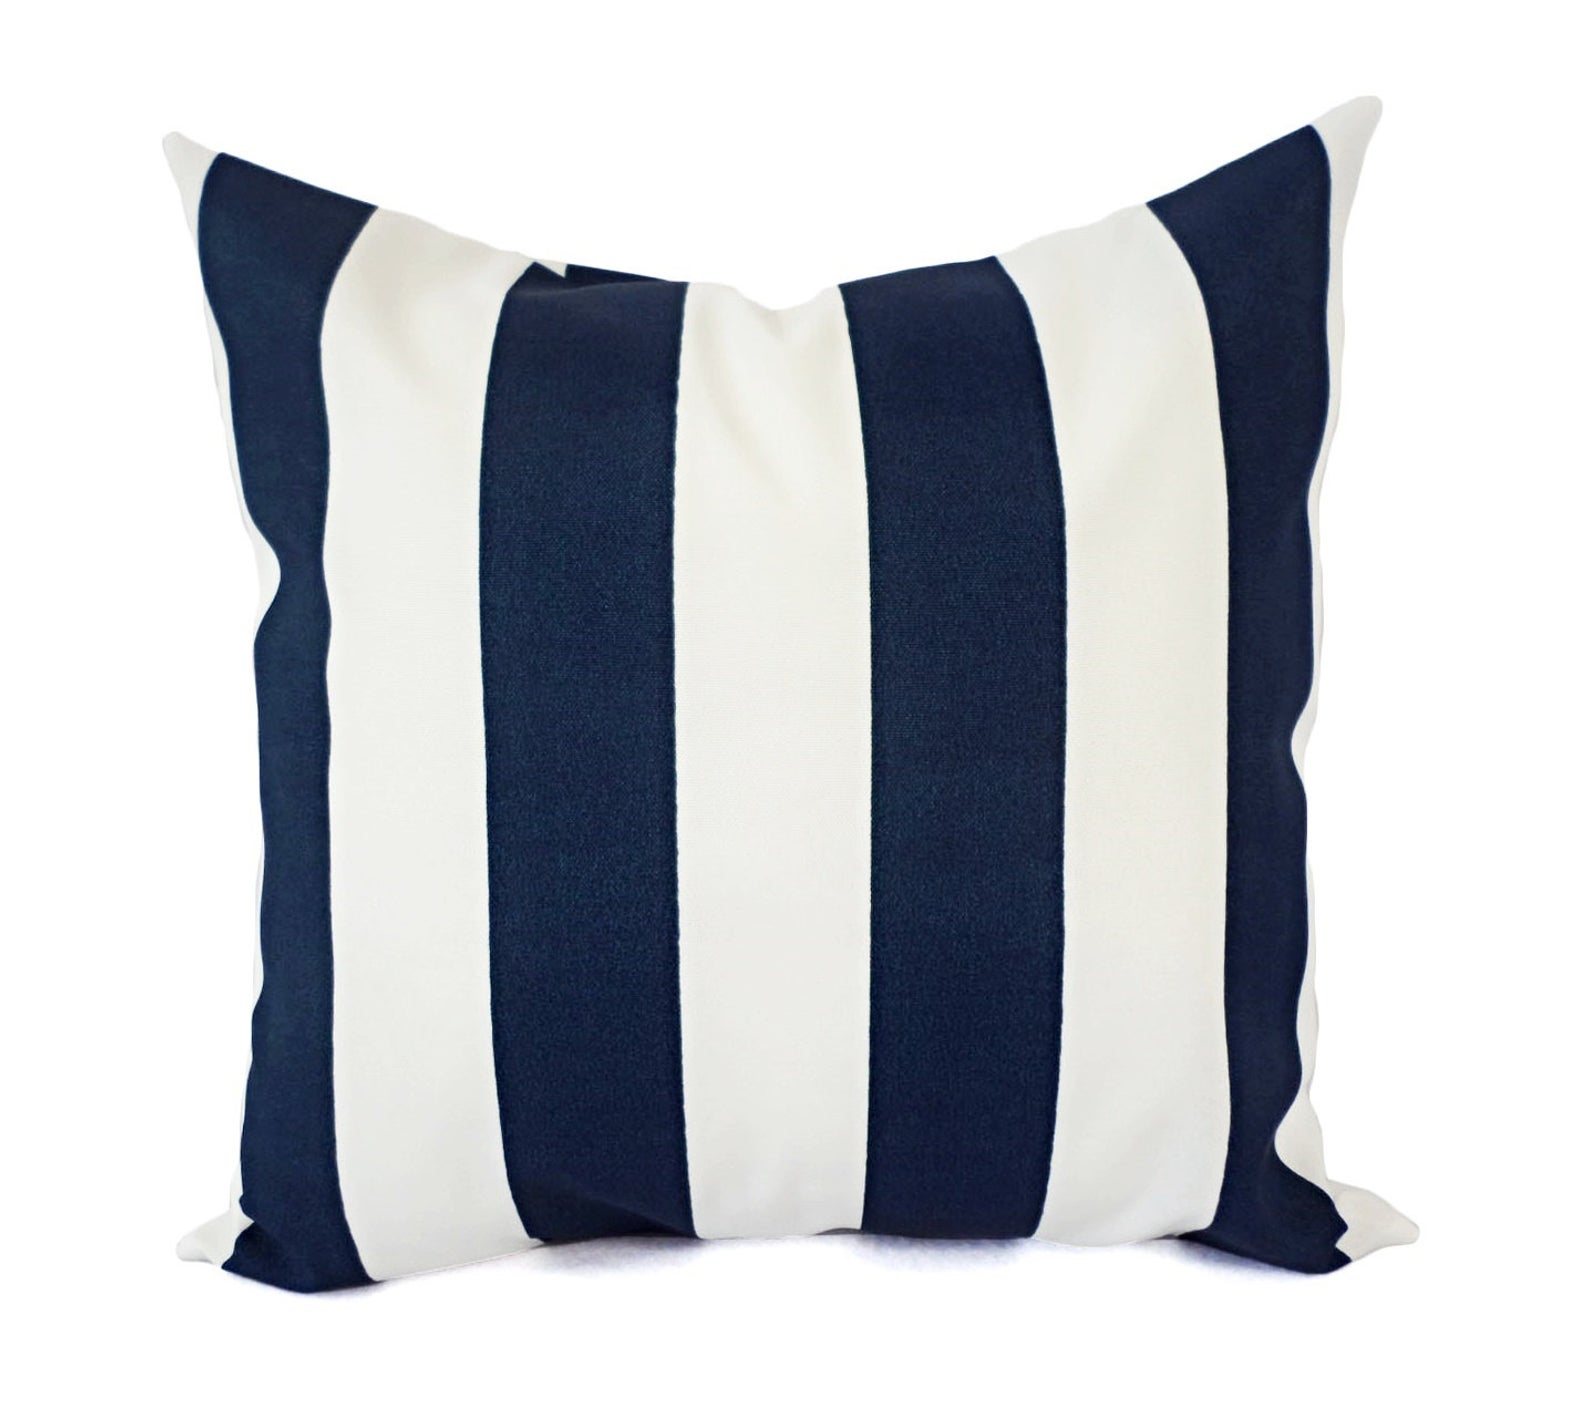 Two OUTDOOR Navy & White Pillow Covers